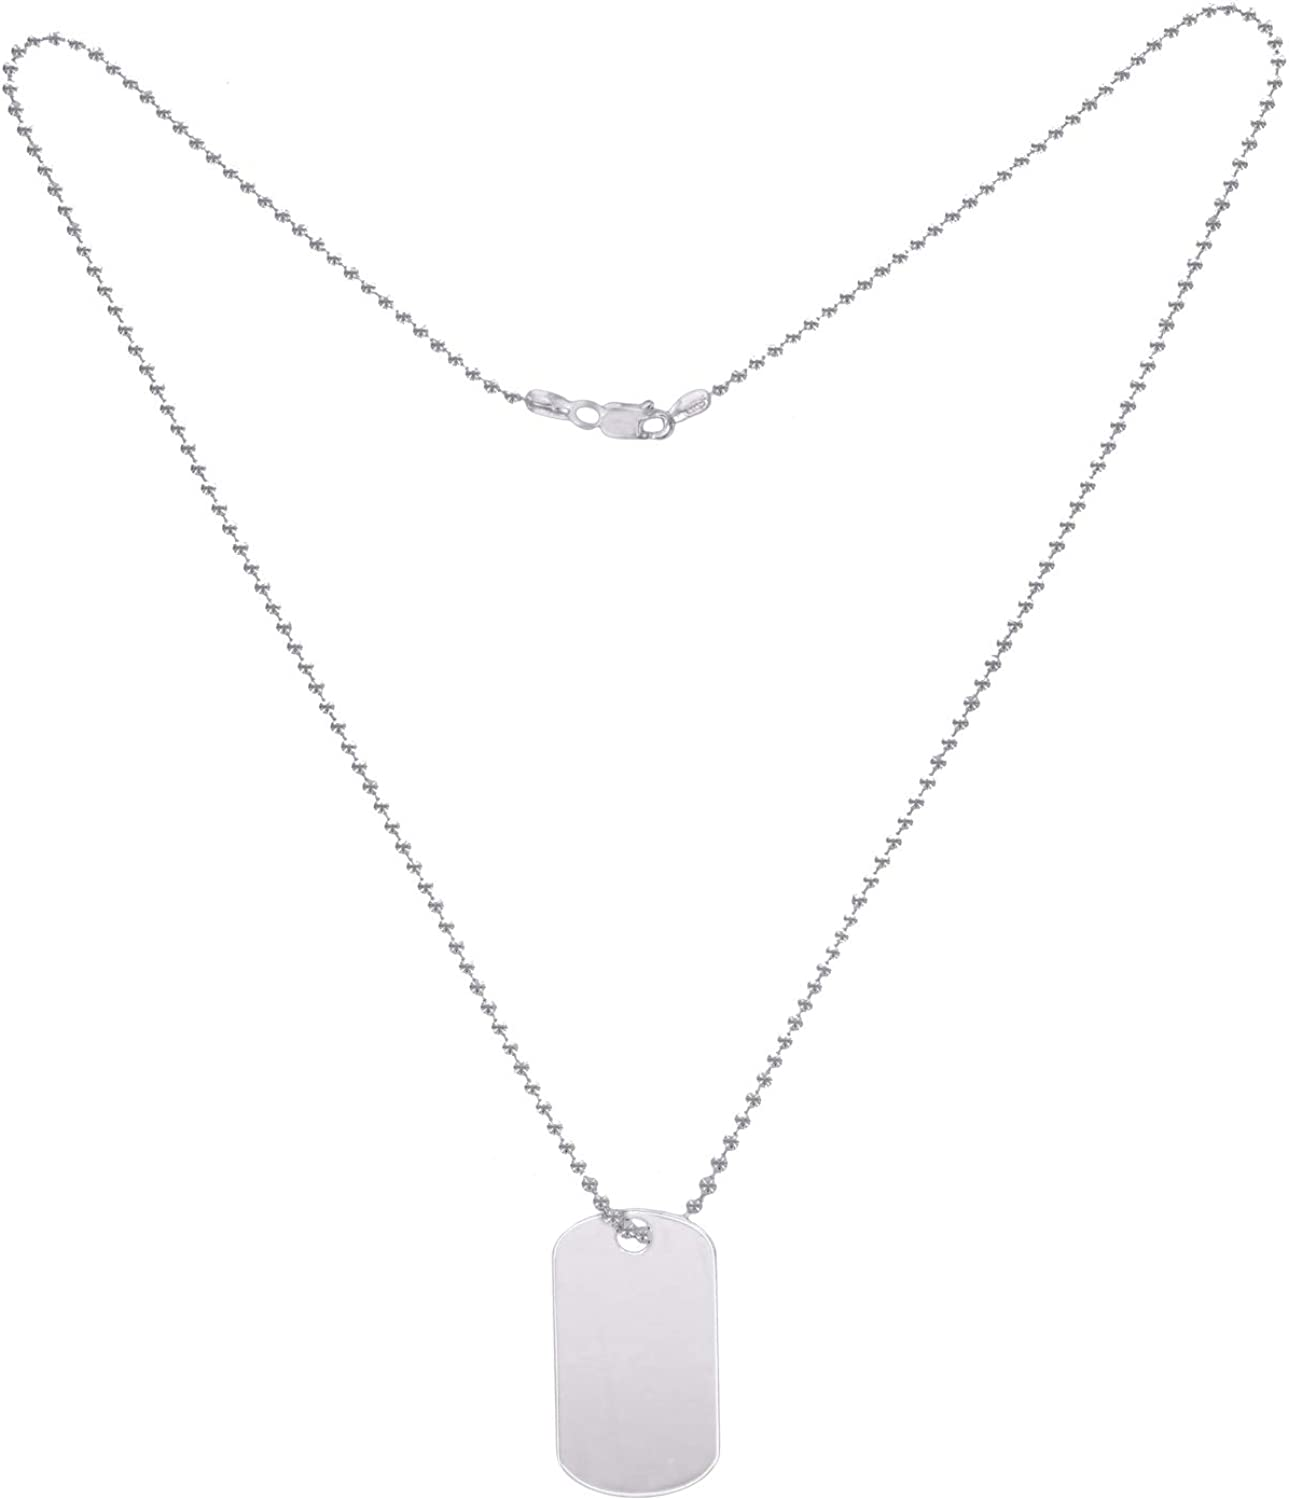 GEMOUR Collection Famous Design Platinum Plated Silver Engravable Dog Tag Necklace, 20 inches